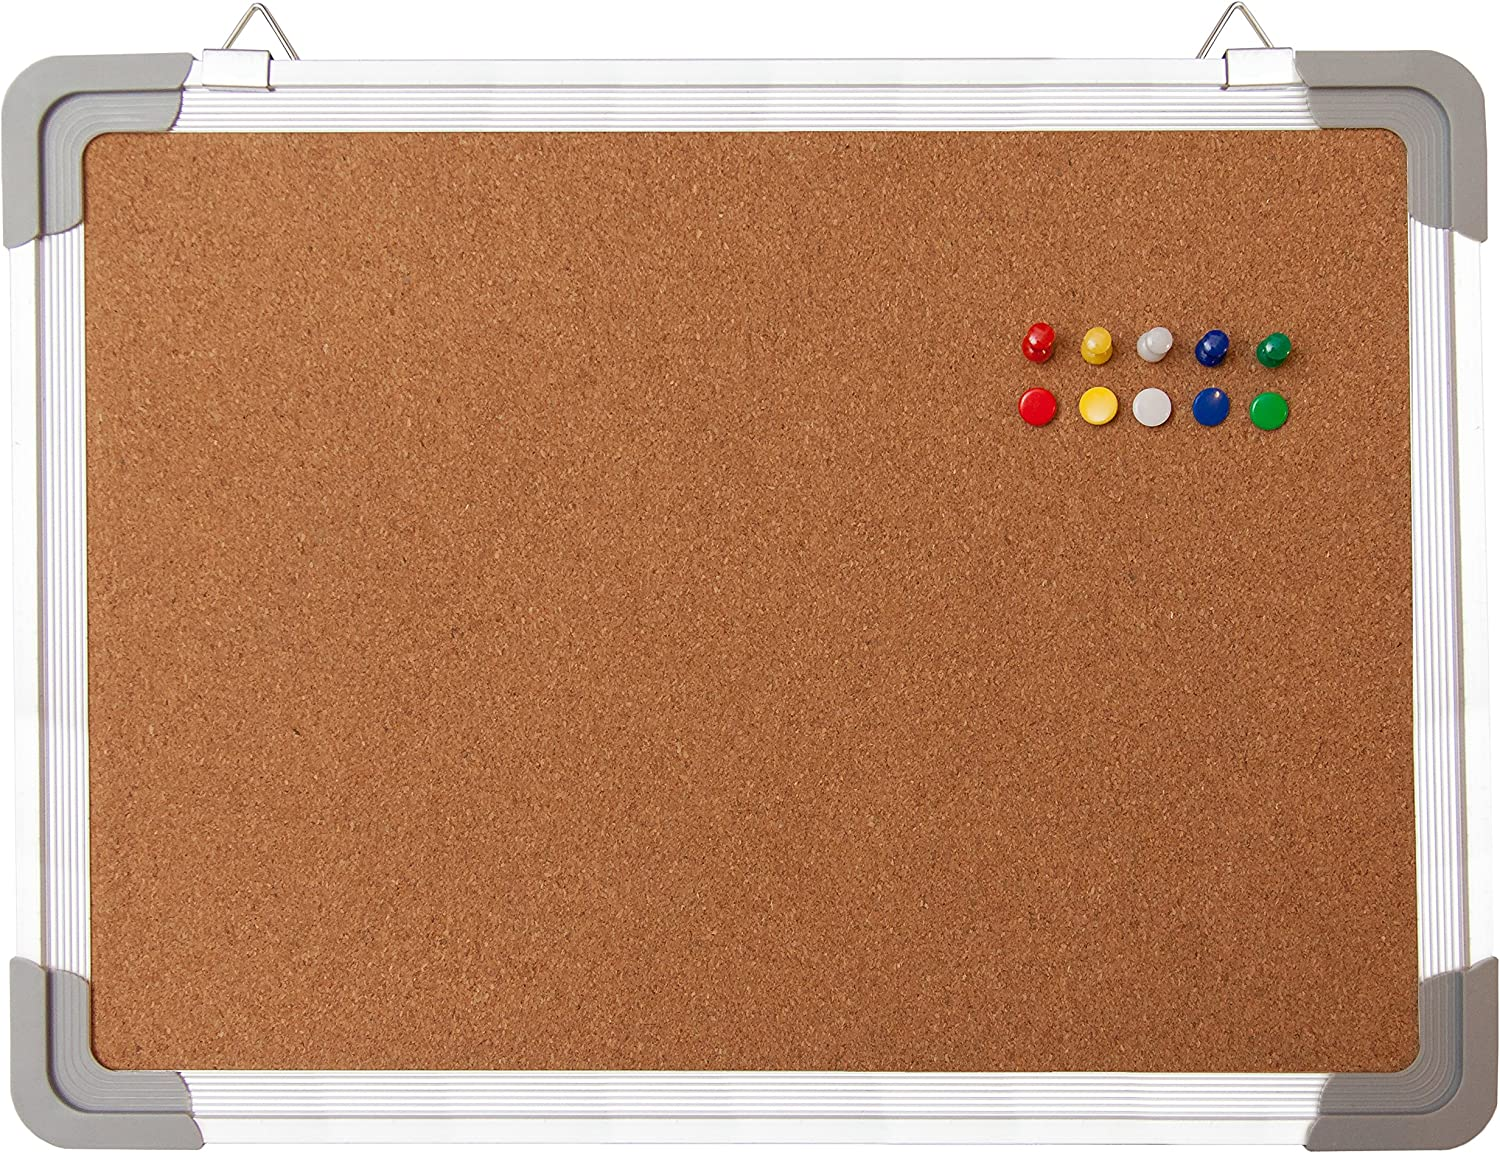 Cork Board Set - Limited time sale Bulletin Corkboard Max 63% OFF 16 with 12 x inch 10 Framed